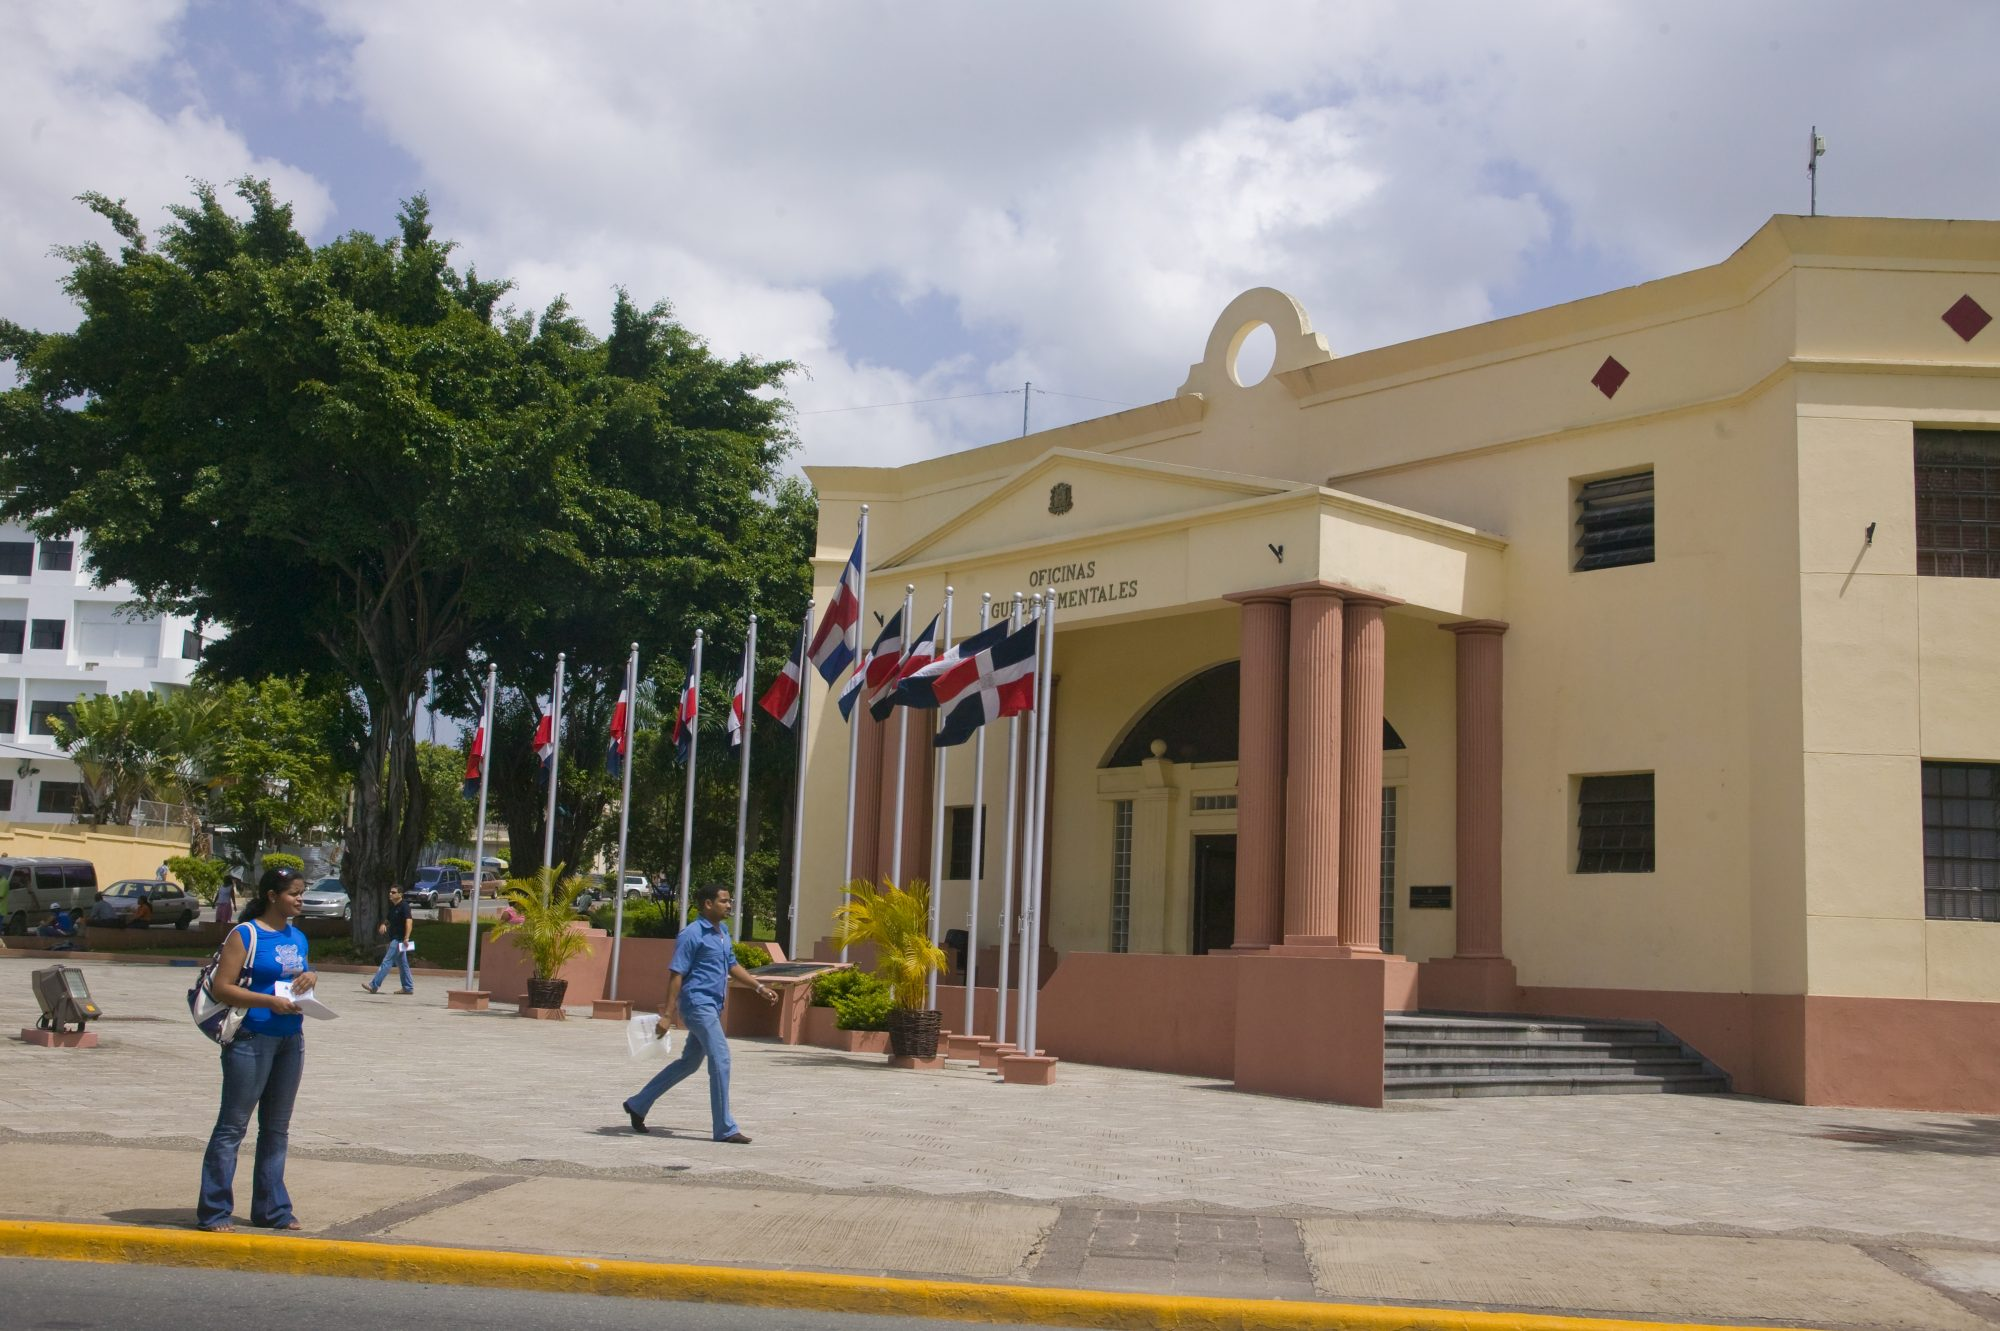 D.R. government offices